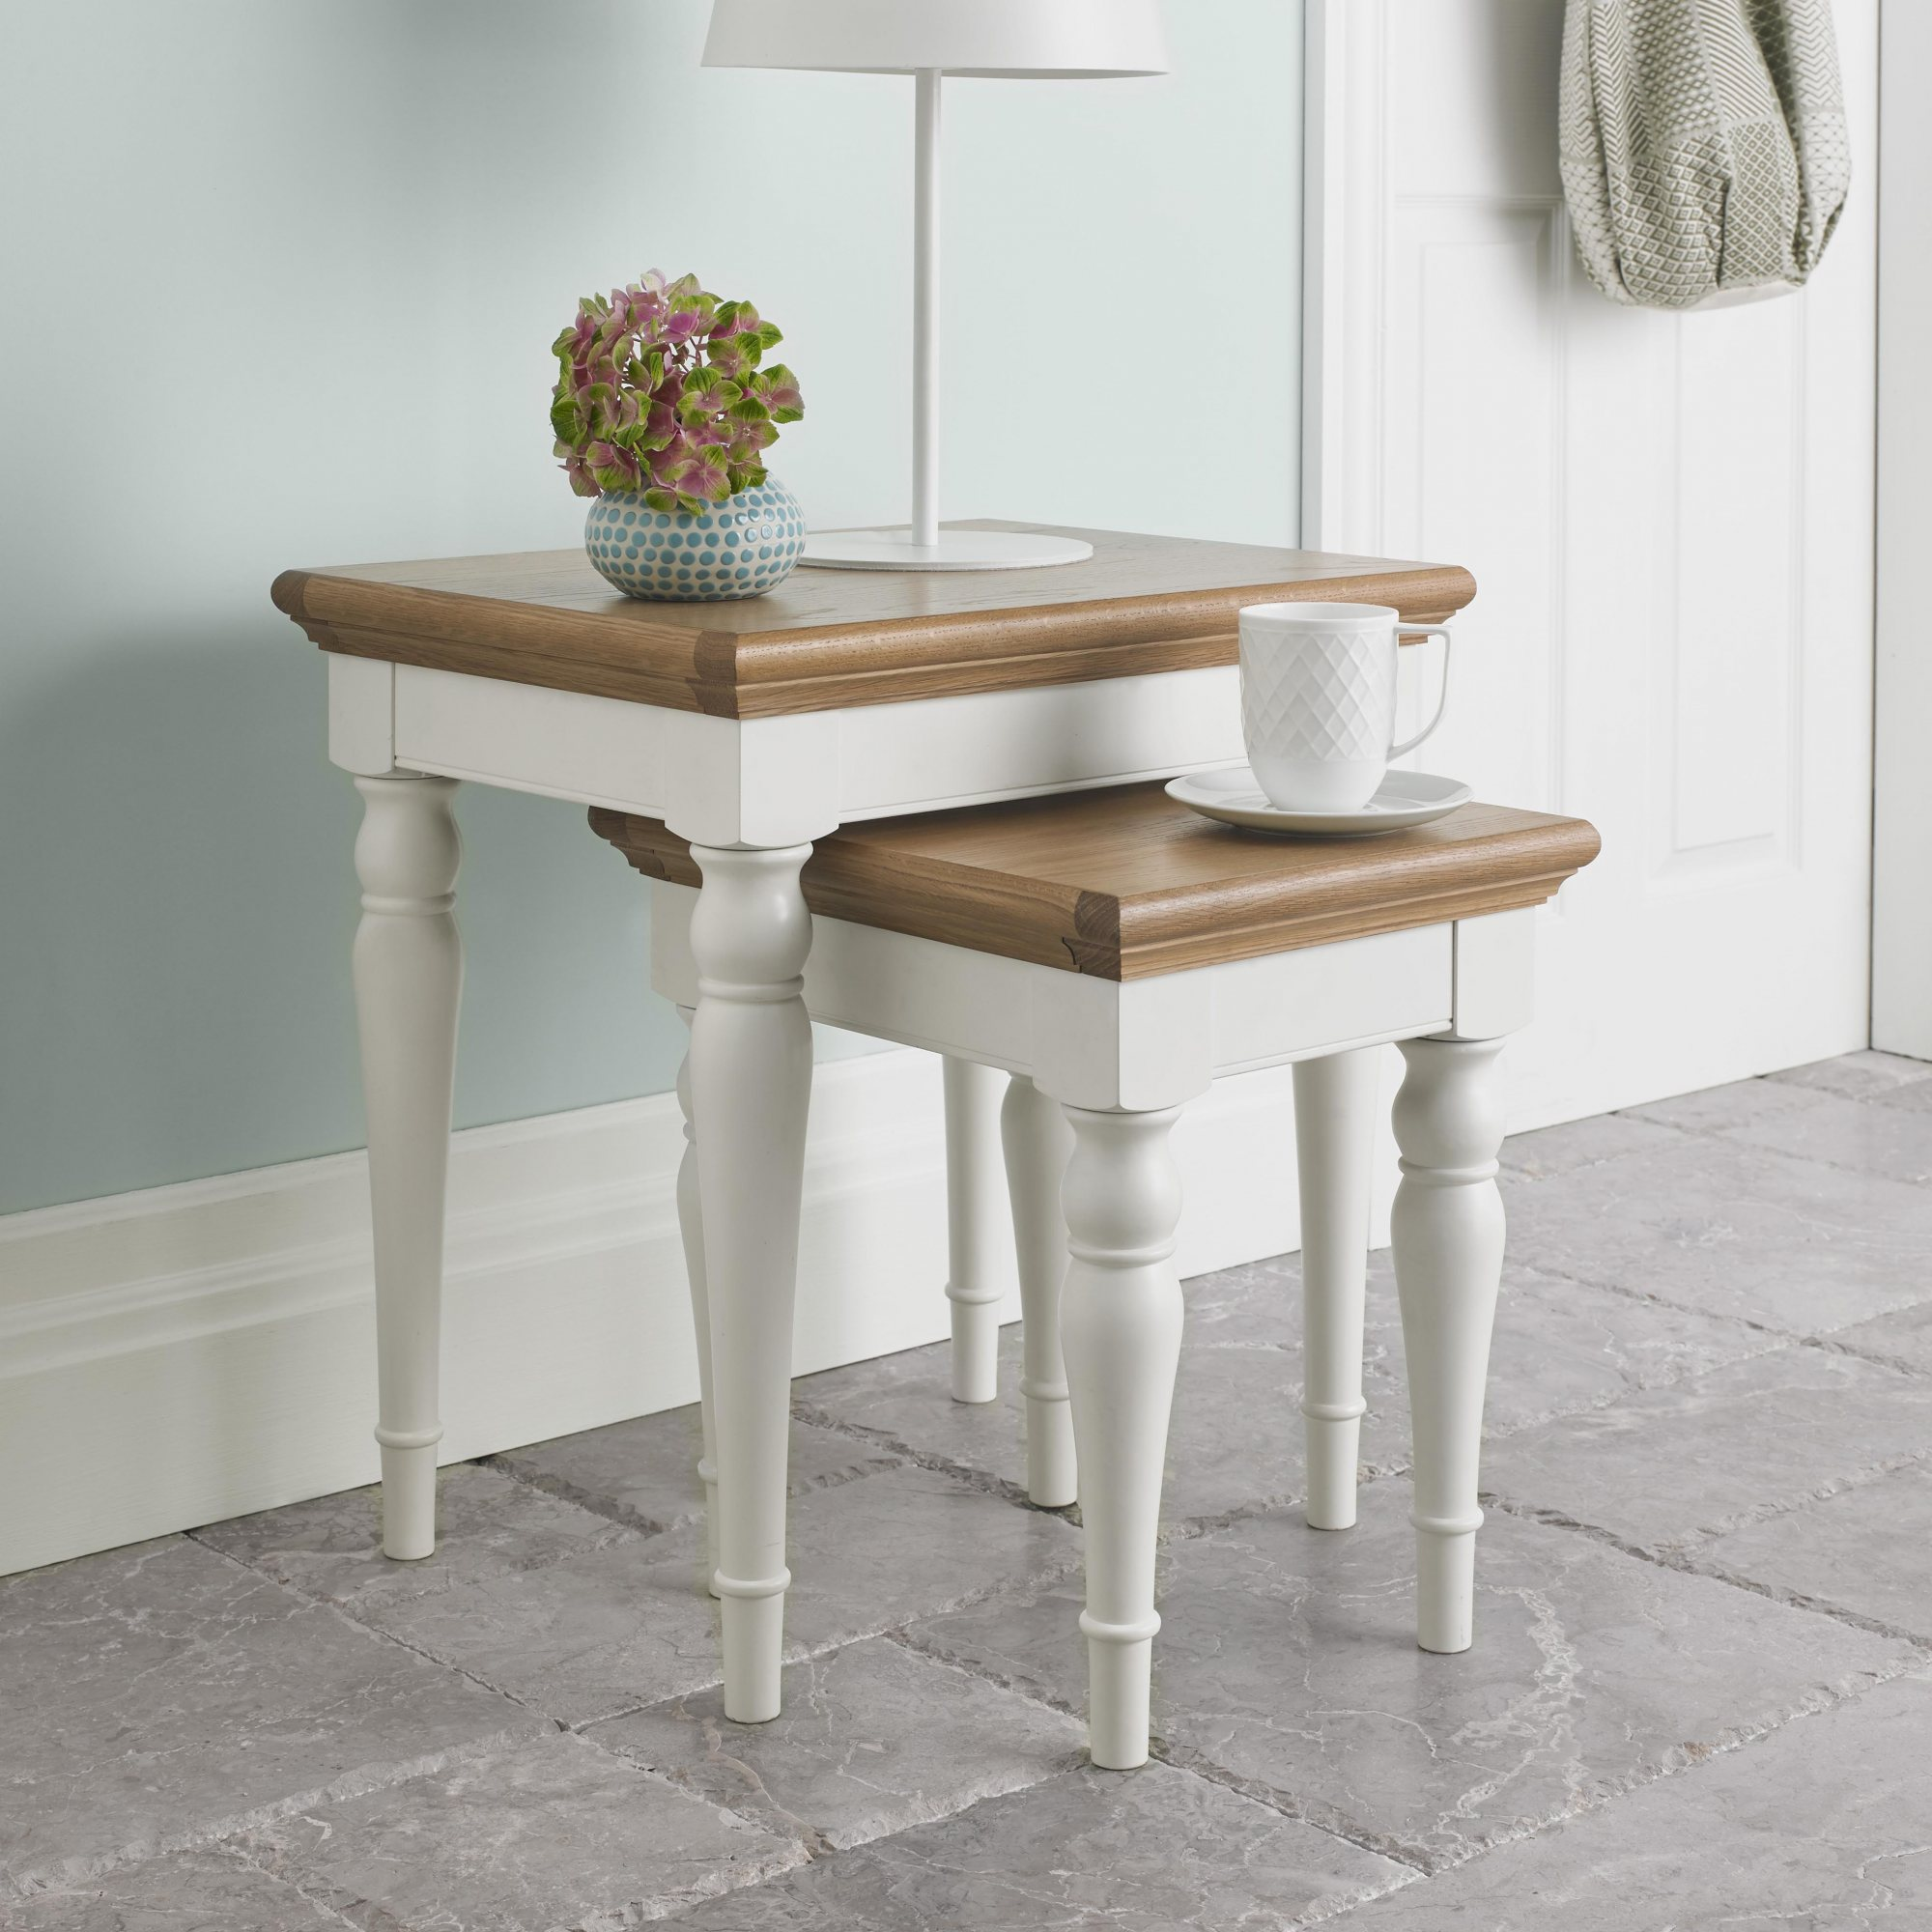 KYRA TWO TONE NEST OF TABLES - L55cm x D43cm x H57cm